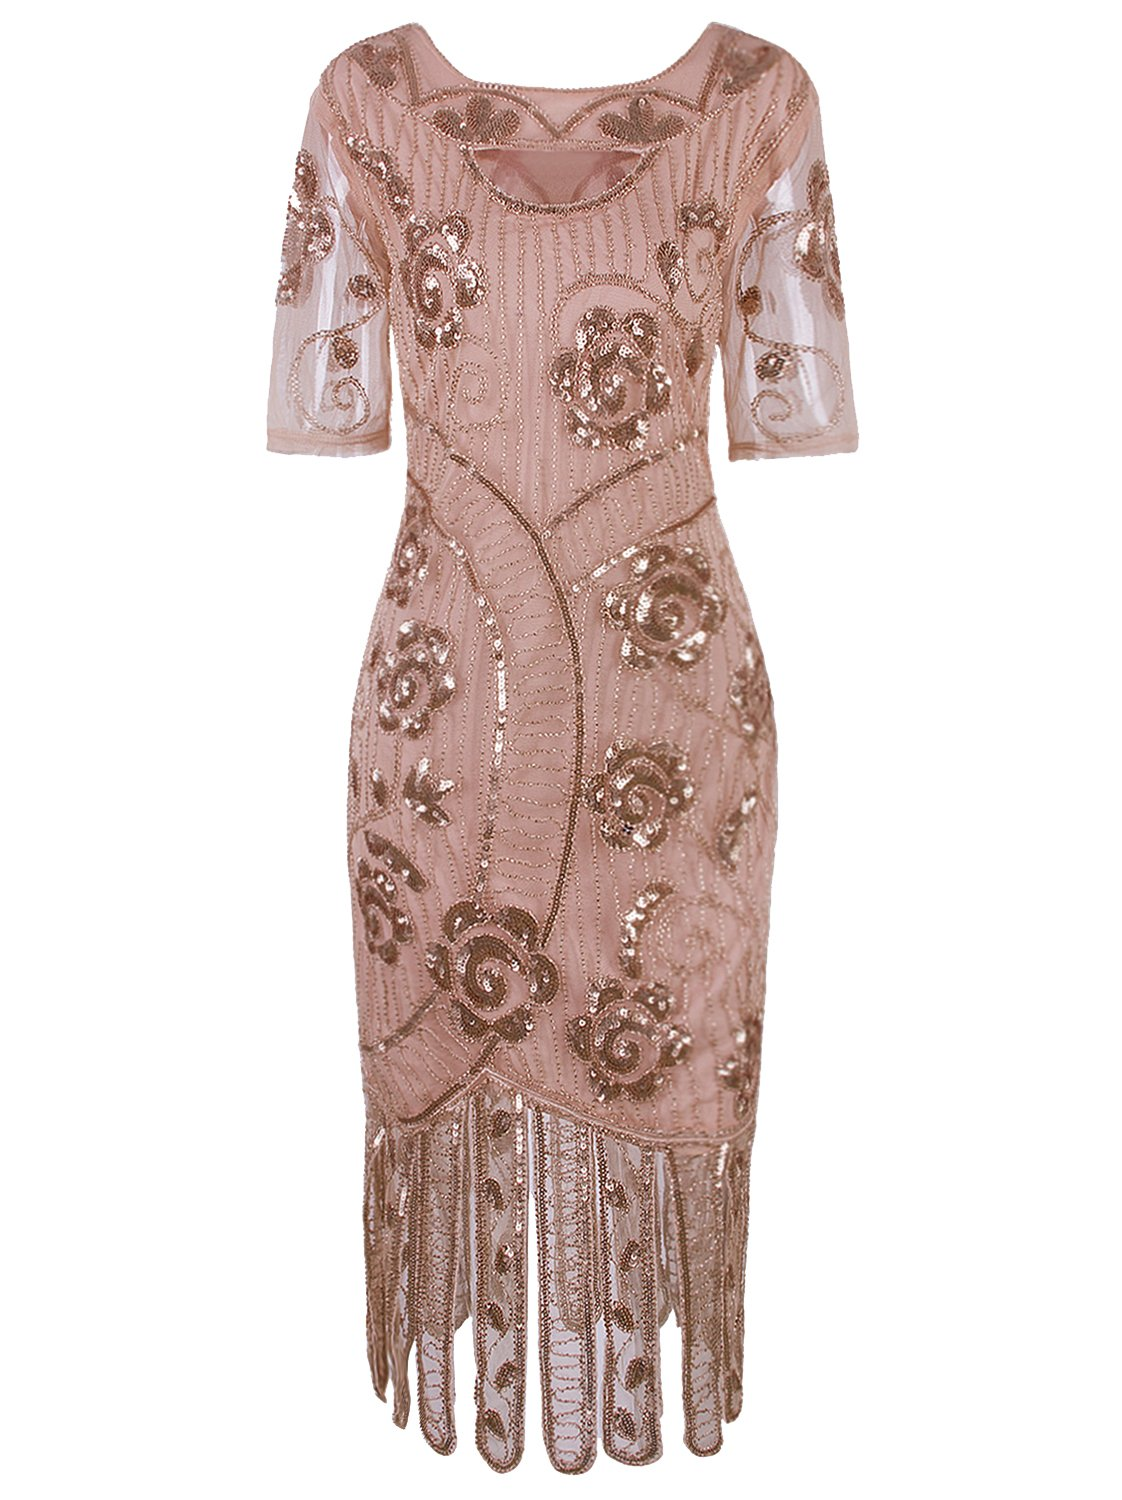 Mother Of The Bride Dresses - Women Vintage 1920s Dresses Floary Beaded Cocktail Flapper Dress With Sleeves Gatsby Party